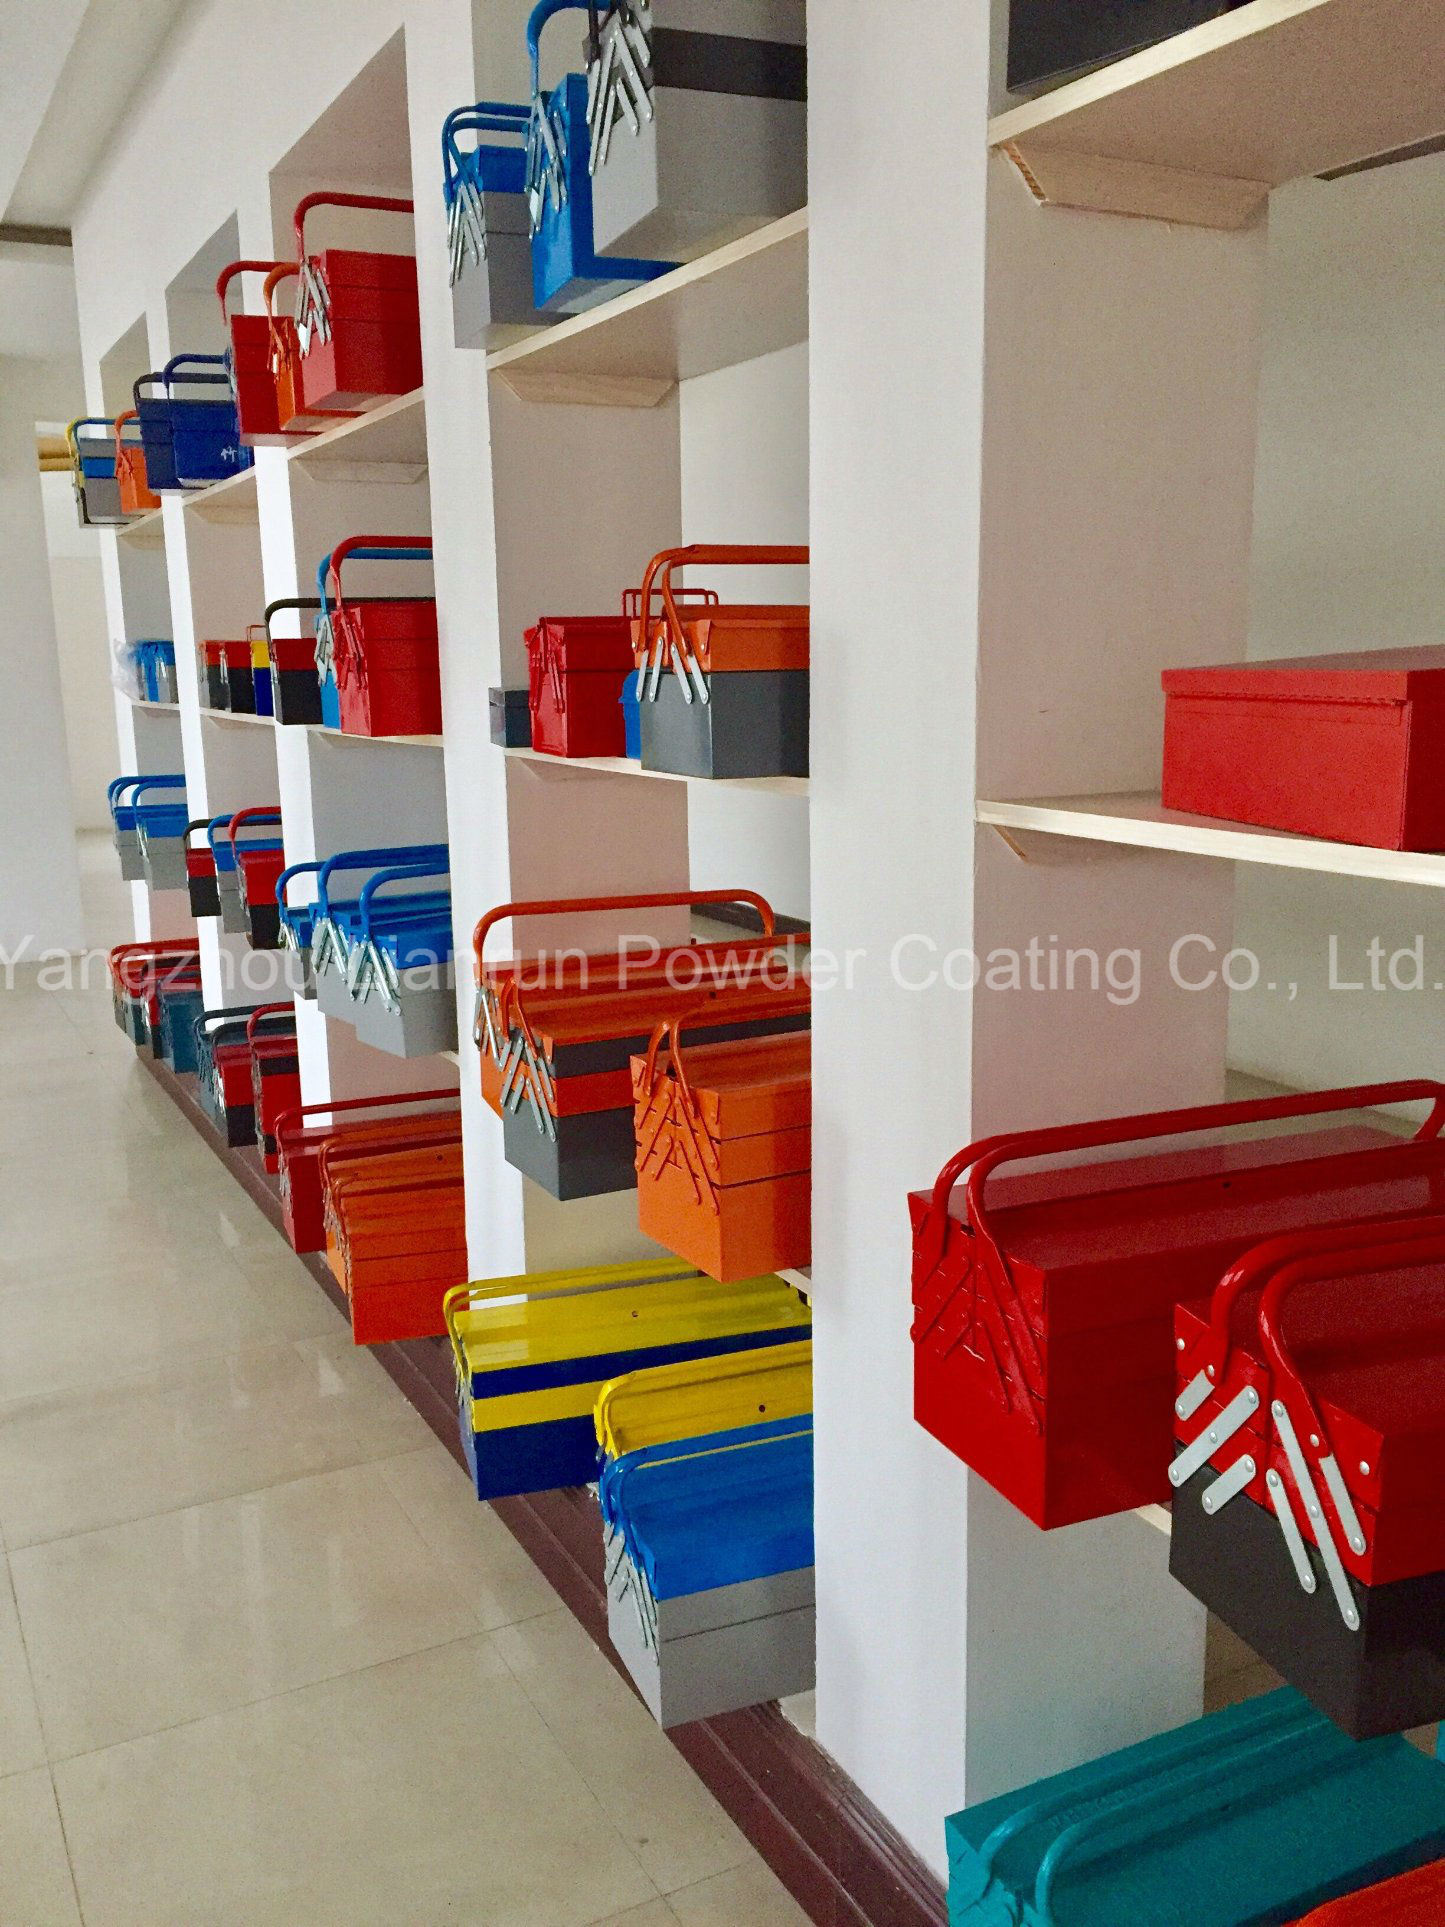 Special Powder Coating for Air Conditioner External Unit